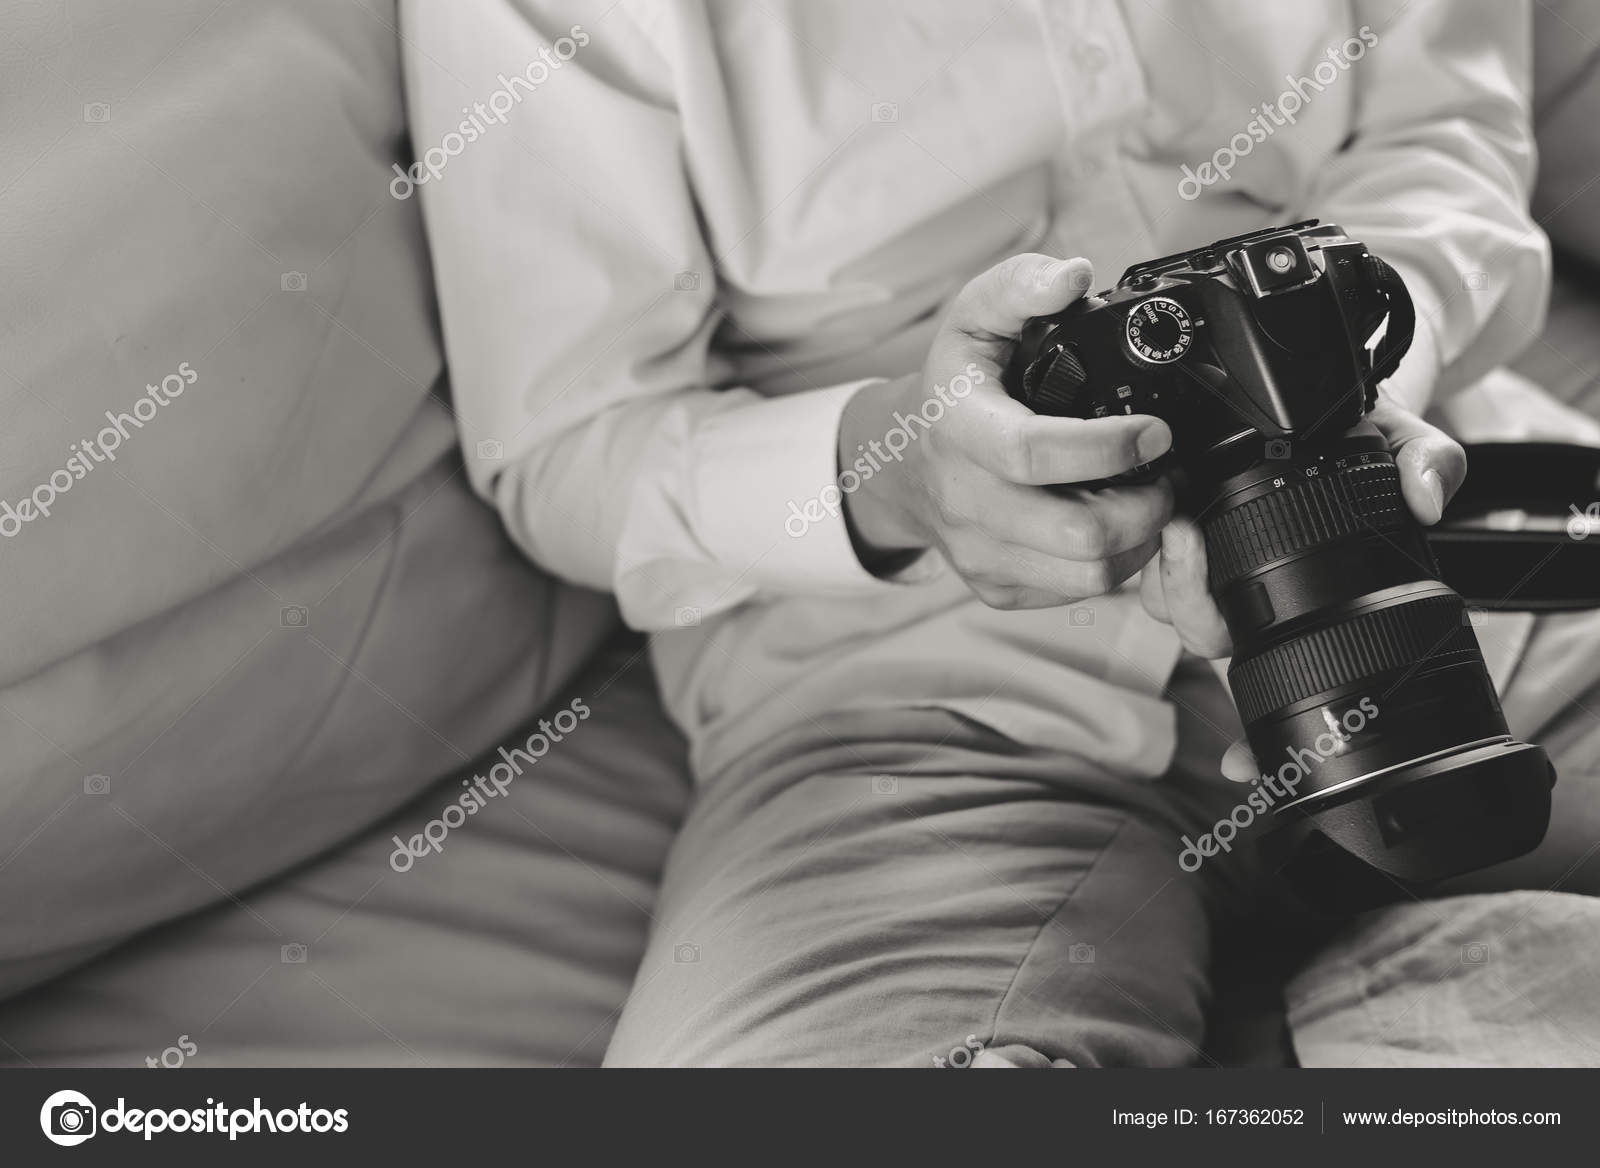 Black and white closeup picture dslr camera in hands of a person sitting on couch top side view mock up background photo by